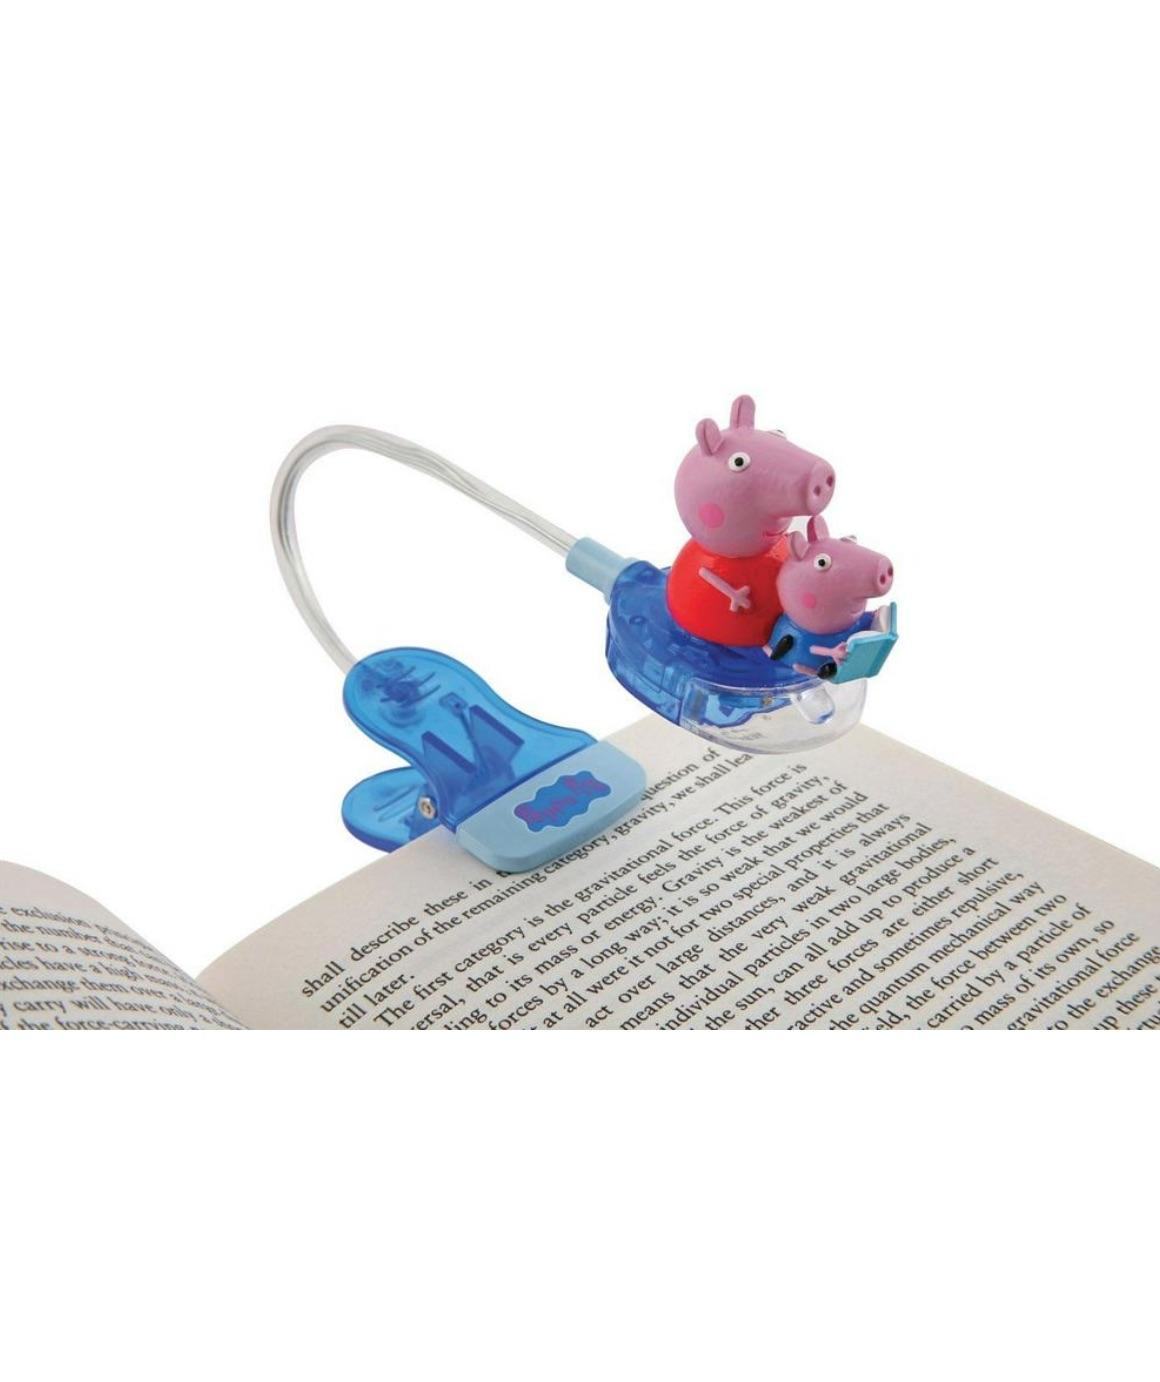 peppa pig booklight